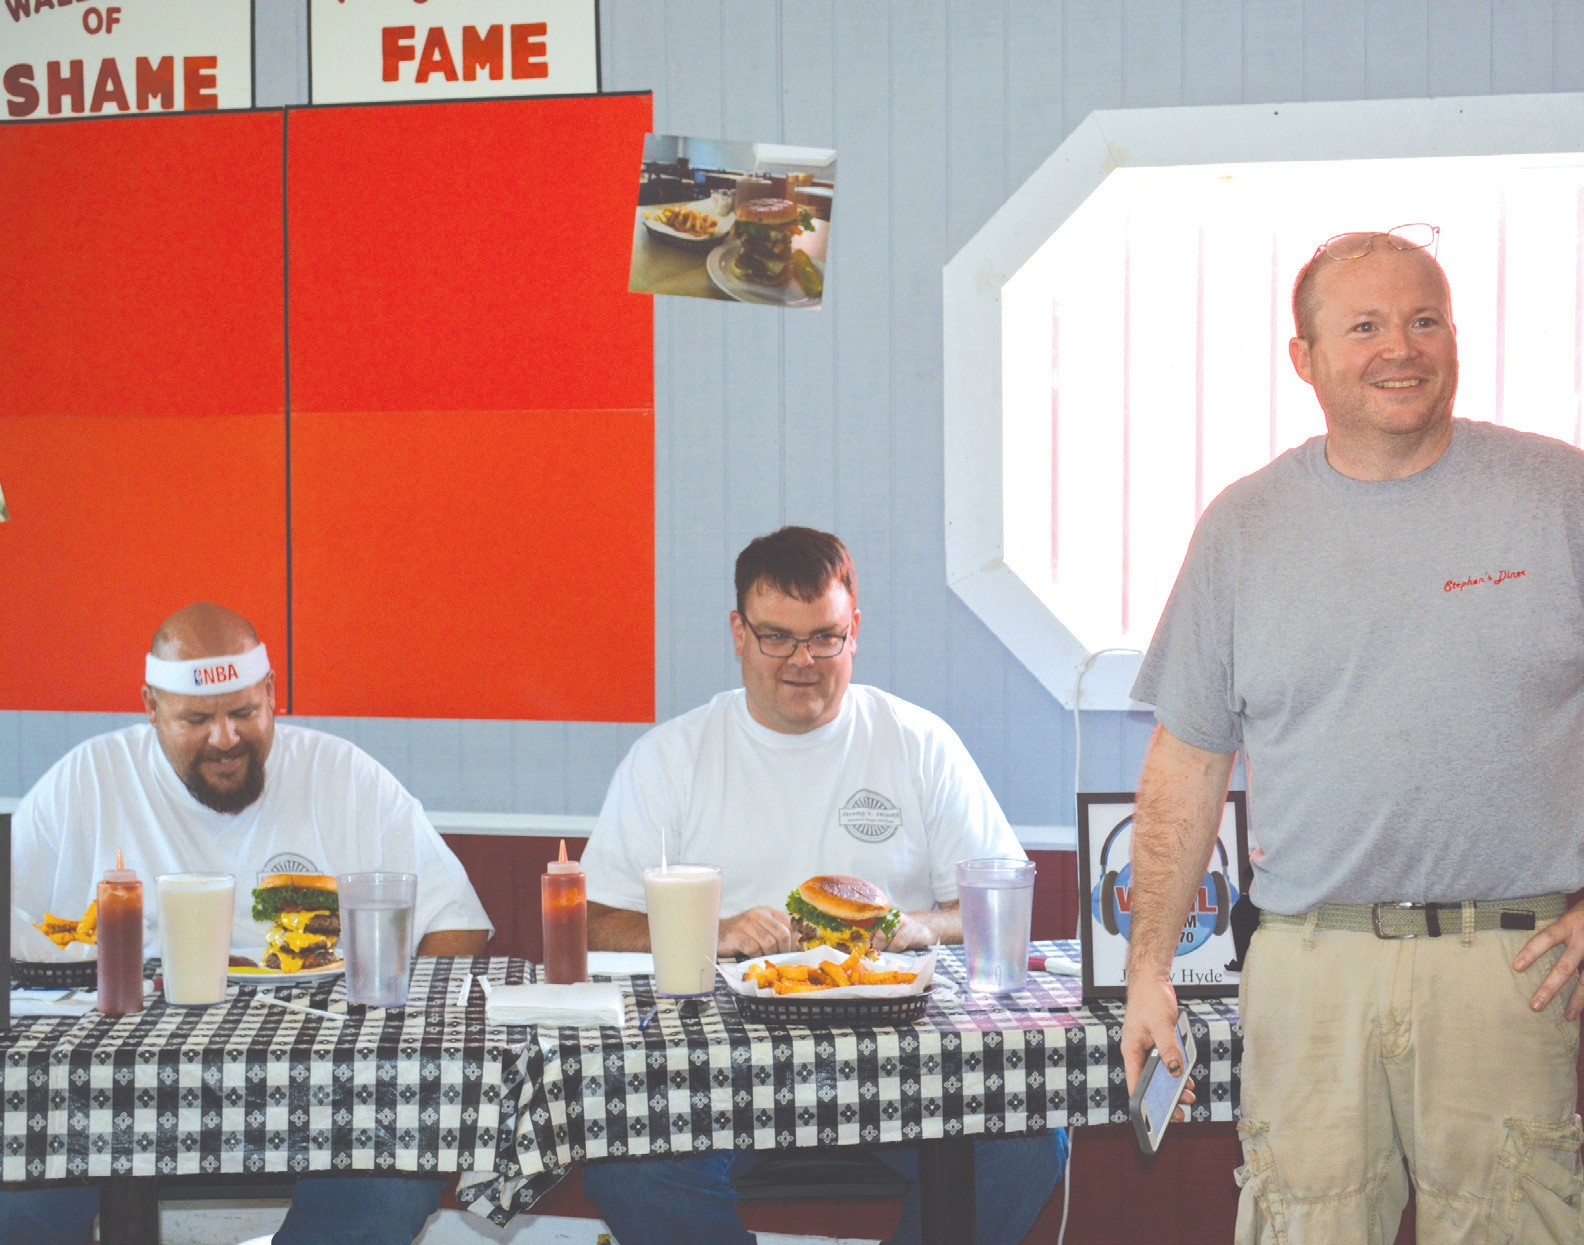 Stephen's Diner owner Stephen Hill welcomes the latest challenger's to his Triple- Bacon Cheeseburger Challenge – Jeremy Lesley (left) of WCRL and Jeremy Hyde of Alabama Power. Despite a big cheering section for each, the pair were ultimately unable to down the triple cheeseburger, homemade potato chips, and 32-ounce milkshake in the 20 minutes allowed. A gutsy effort, in more ways than one. –Rob Rice